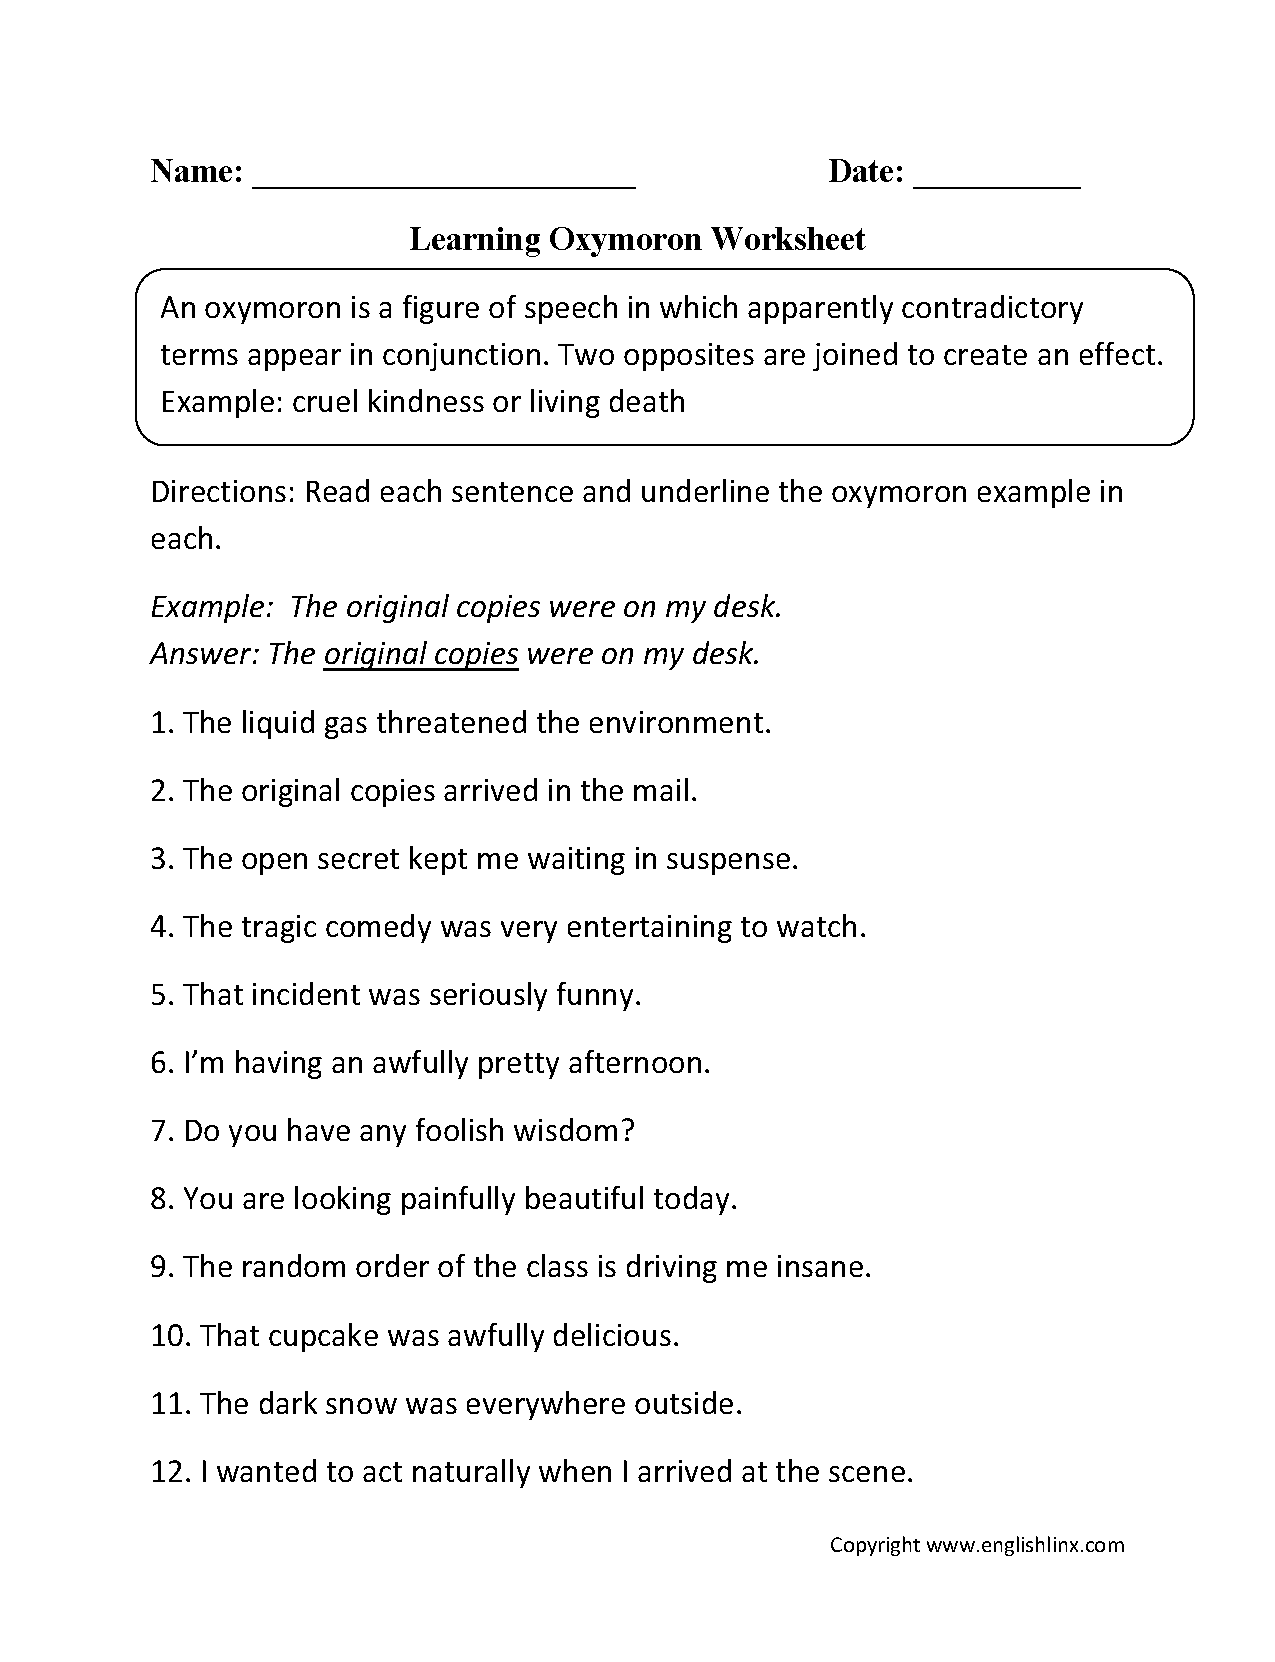 worksheet Connotation Worksheets page 1 connotation denotation in class worksheet docx ms oxymoron figurative language worksheets